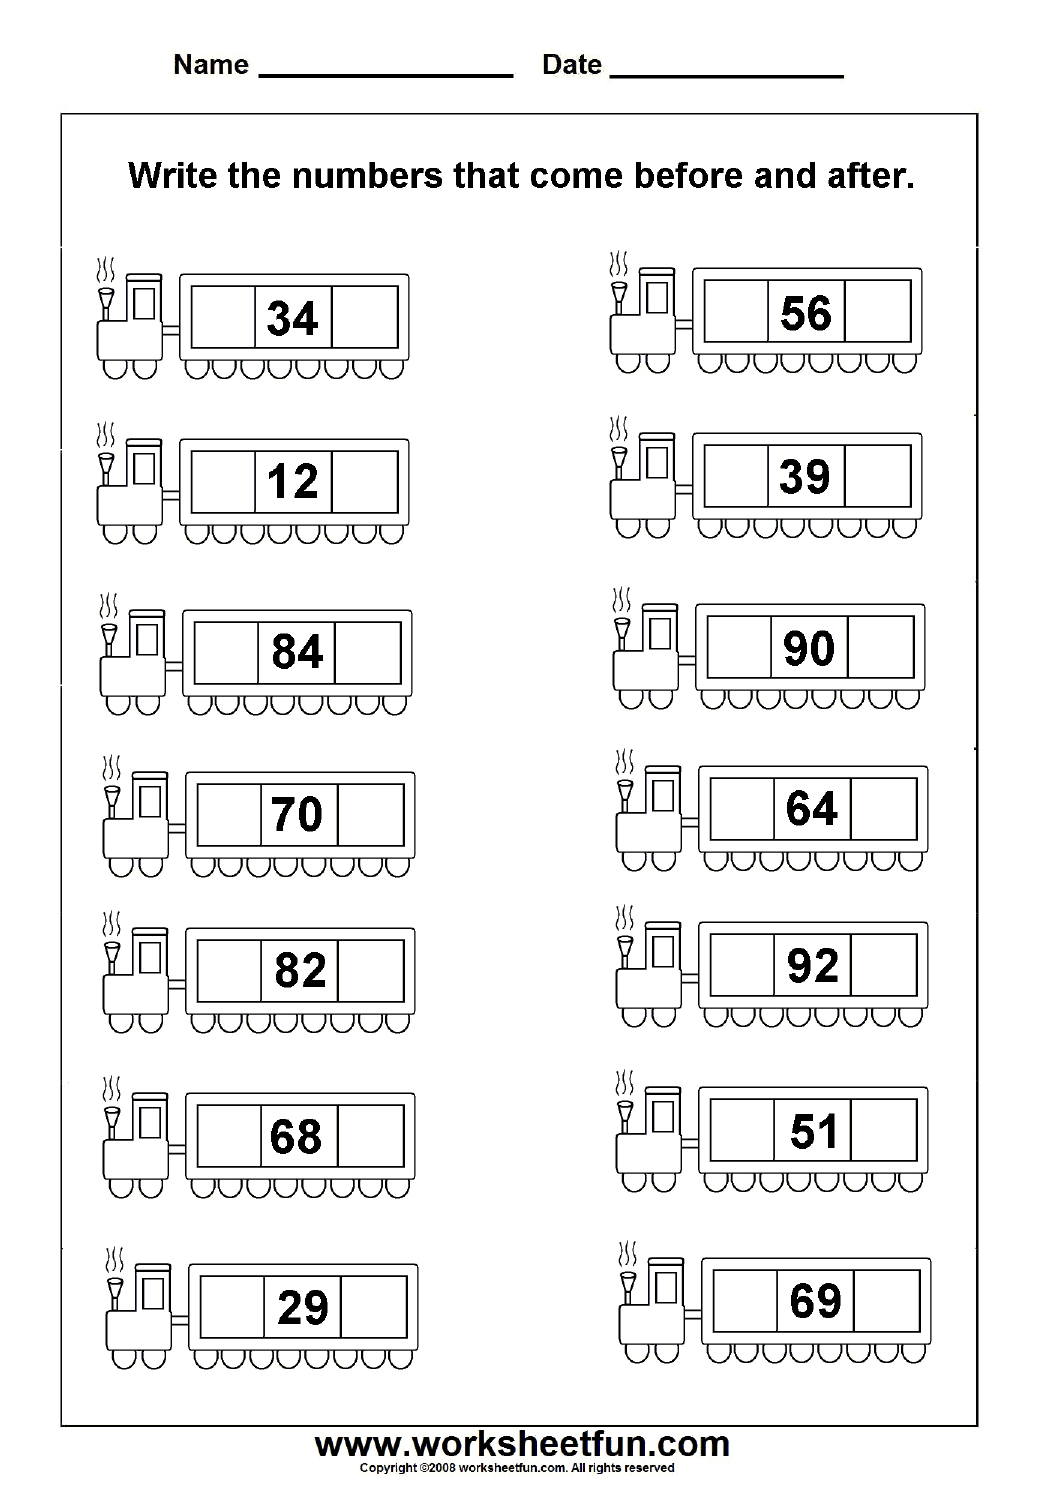 Before & After Numbers - 2 Worksheets | Printable Worksheets | Math - Free Printable Hoy Sheets